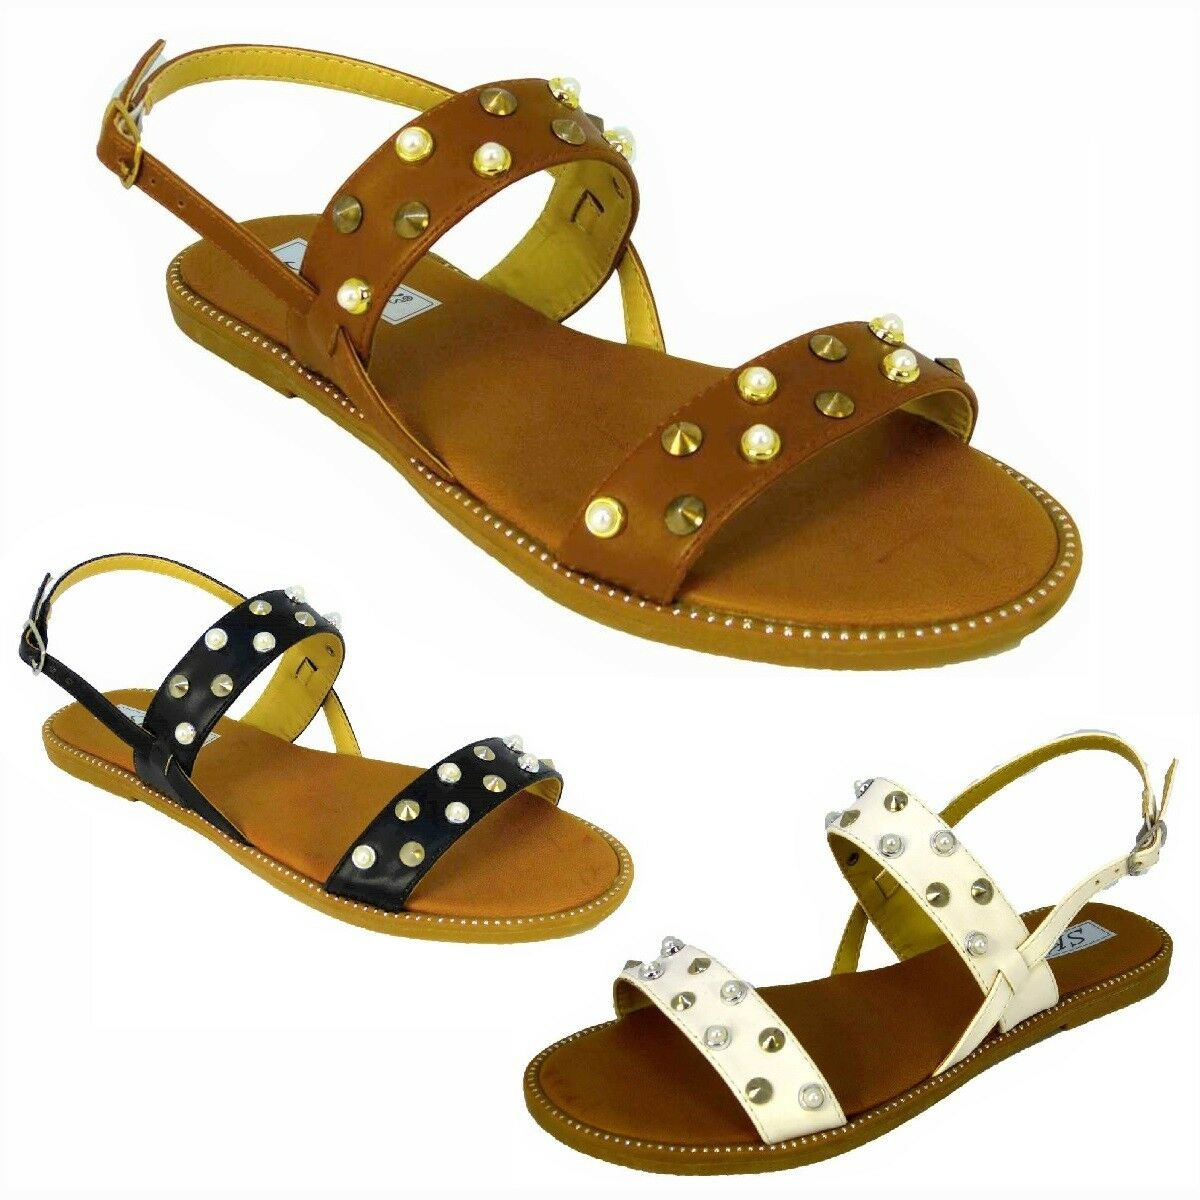 Gentleman/Lady LADIES WOMENS STUDDED FLAT ANKLE BUCKLE STRAPPY SUMMER SANDALS Complete SHOES UK SIZE 3-8 Complete SANDALS specification Pleasant appearance Shopping promotion BG846 9a8bde